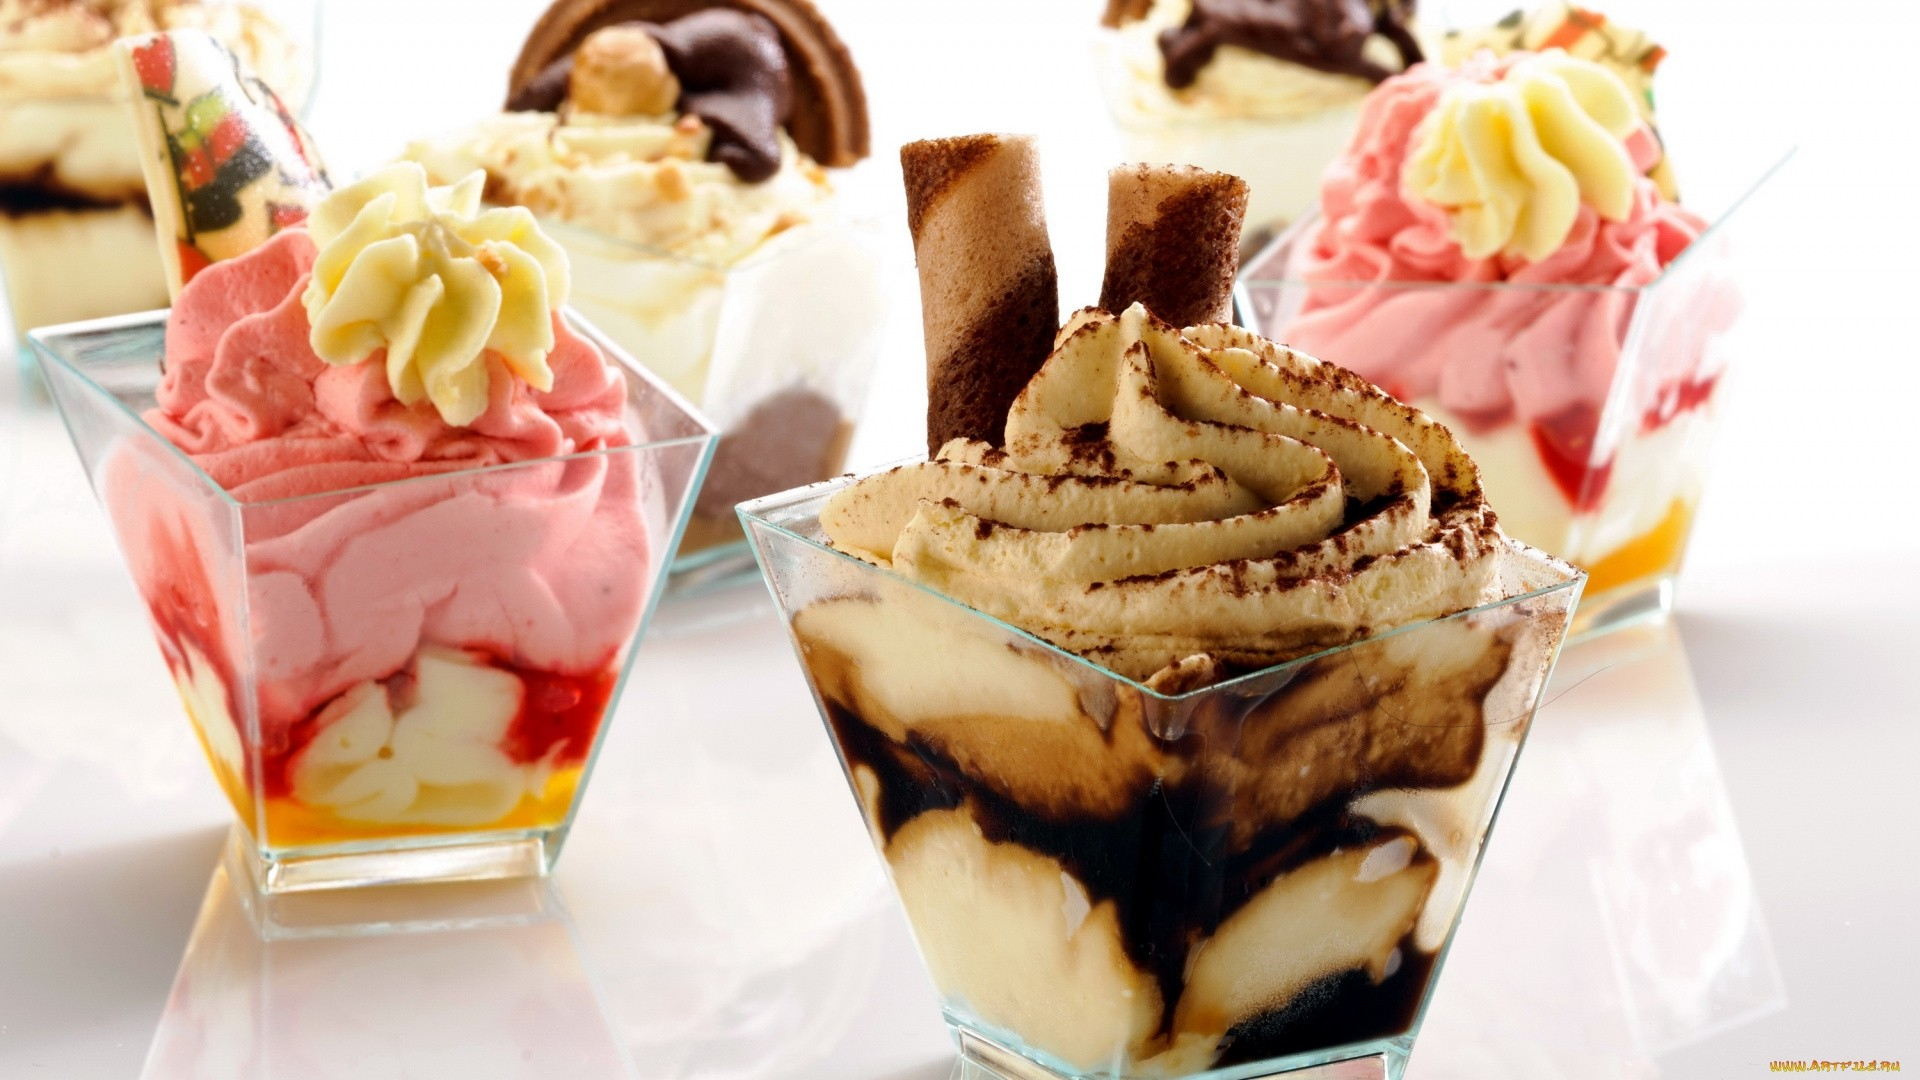 Dessert Ice Cream Wallpaper